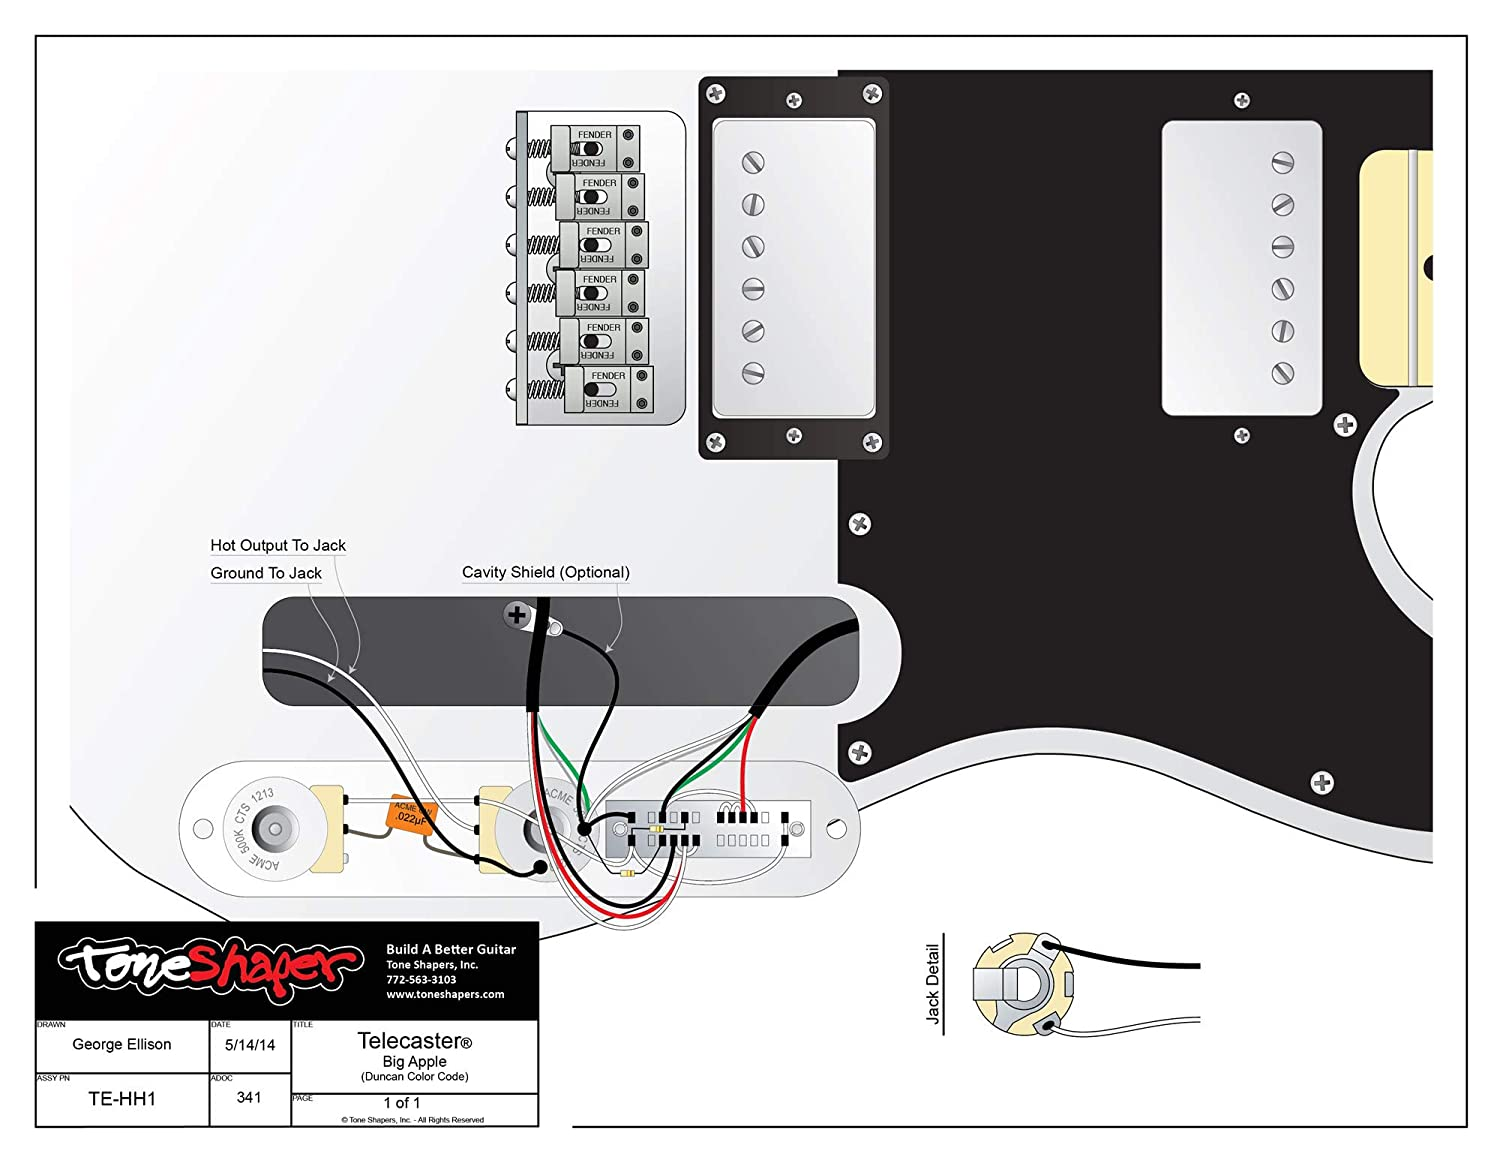 ToneShapers Wiring Kit, Telecaster, HH1 (Big Apple - Requires 4-Conductor on